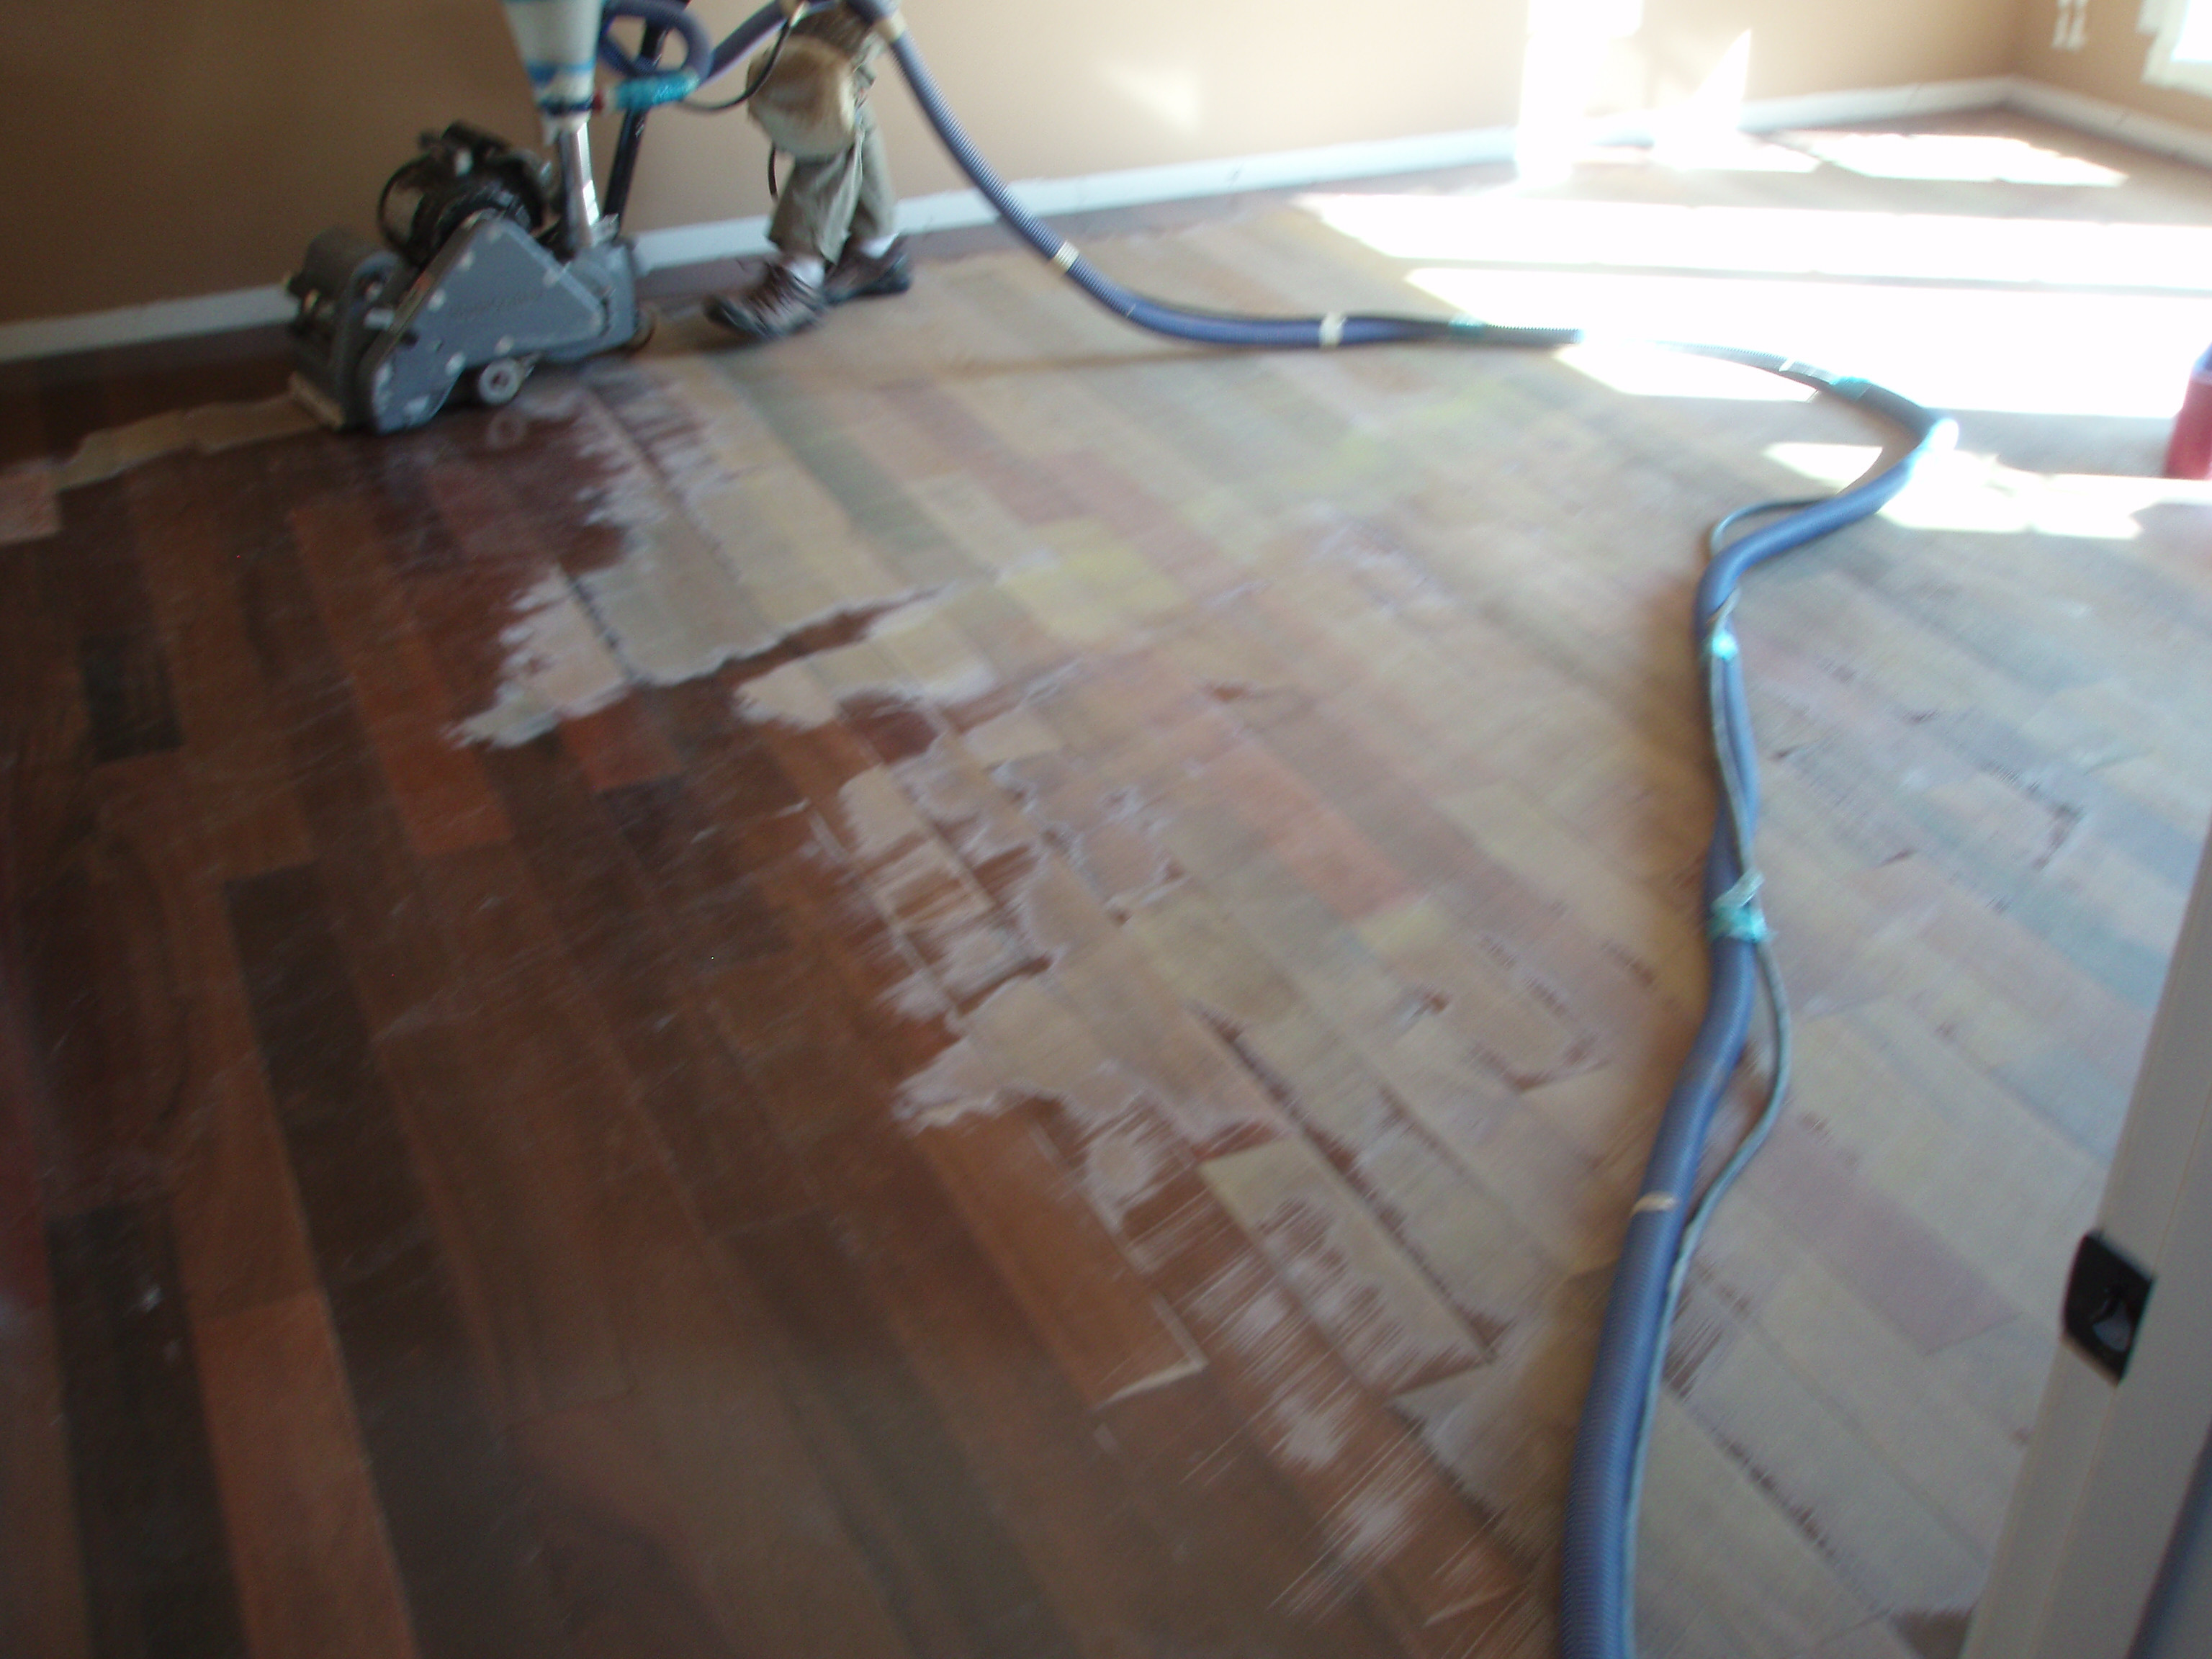 Replace Hardwood Floor with Tile Of Antique Hardwood Floor Refinishing Fresh Floor Tiles for Living Room Throughout Antique Hardwood Floor Refinishing Beautiful Will Refinishingod Floors Pet Stains Old without Sanding Wood with Of